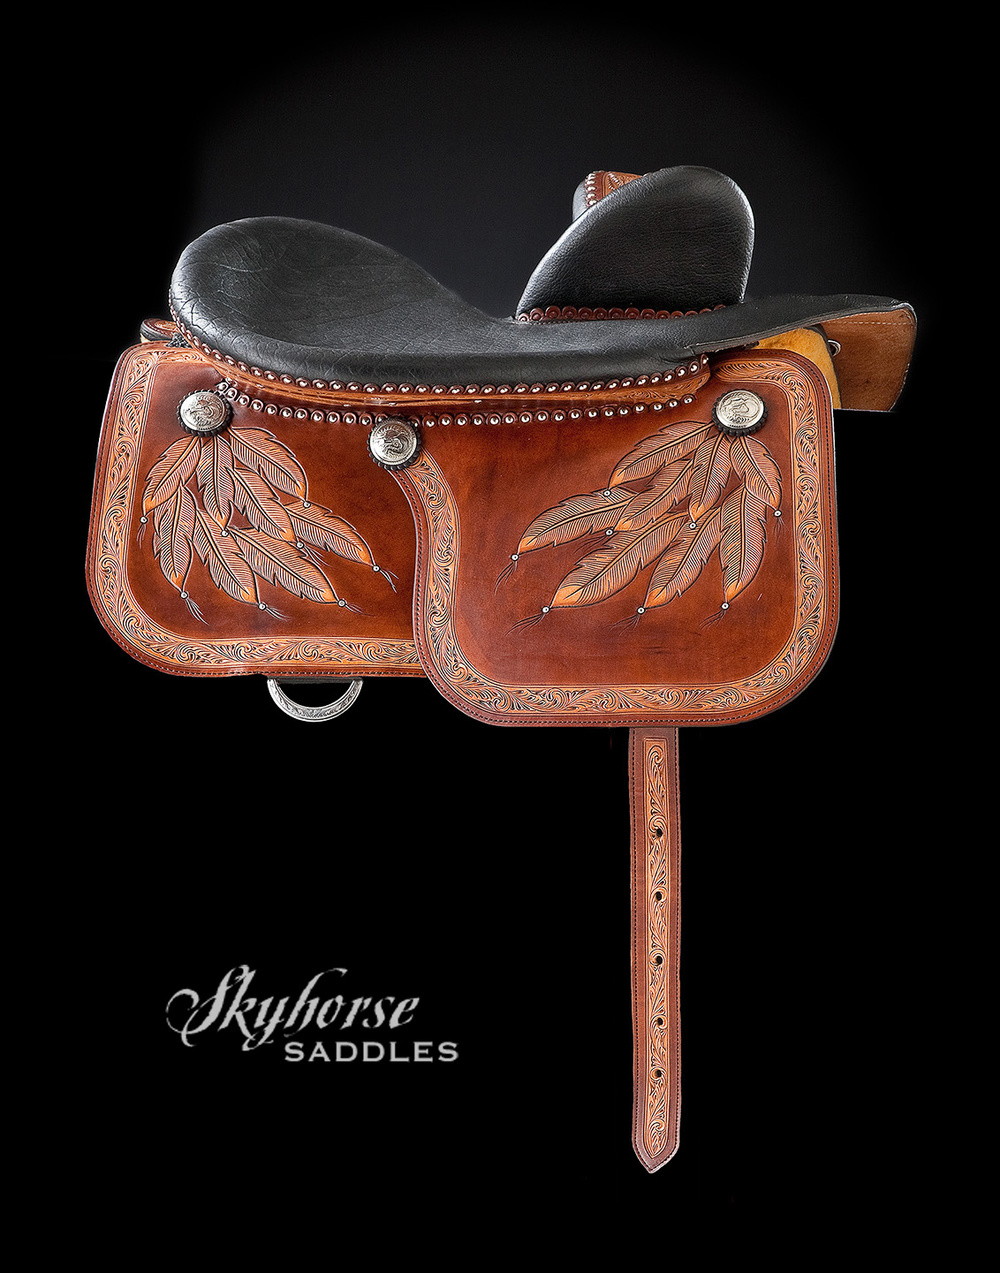 Feather Sidesaddle Click a thumbnail for a slideshow